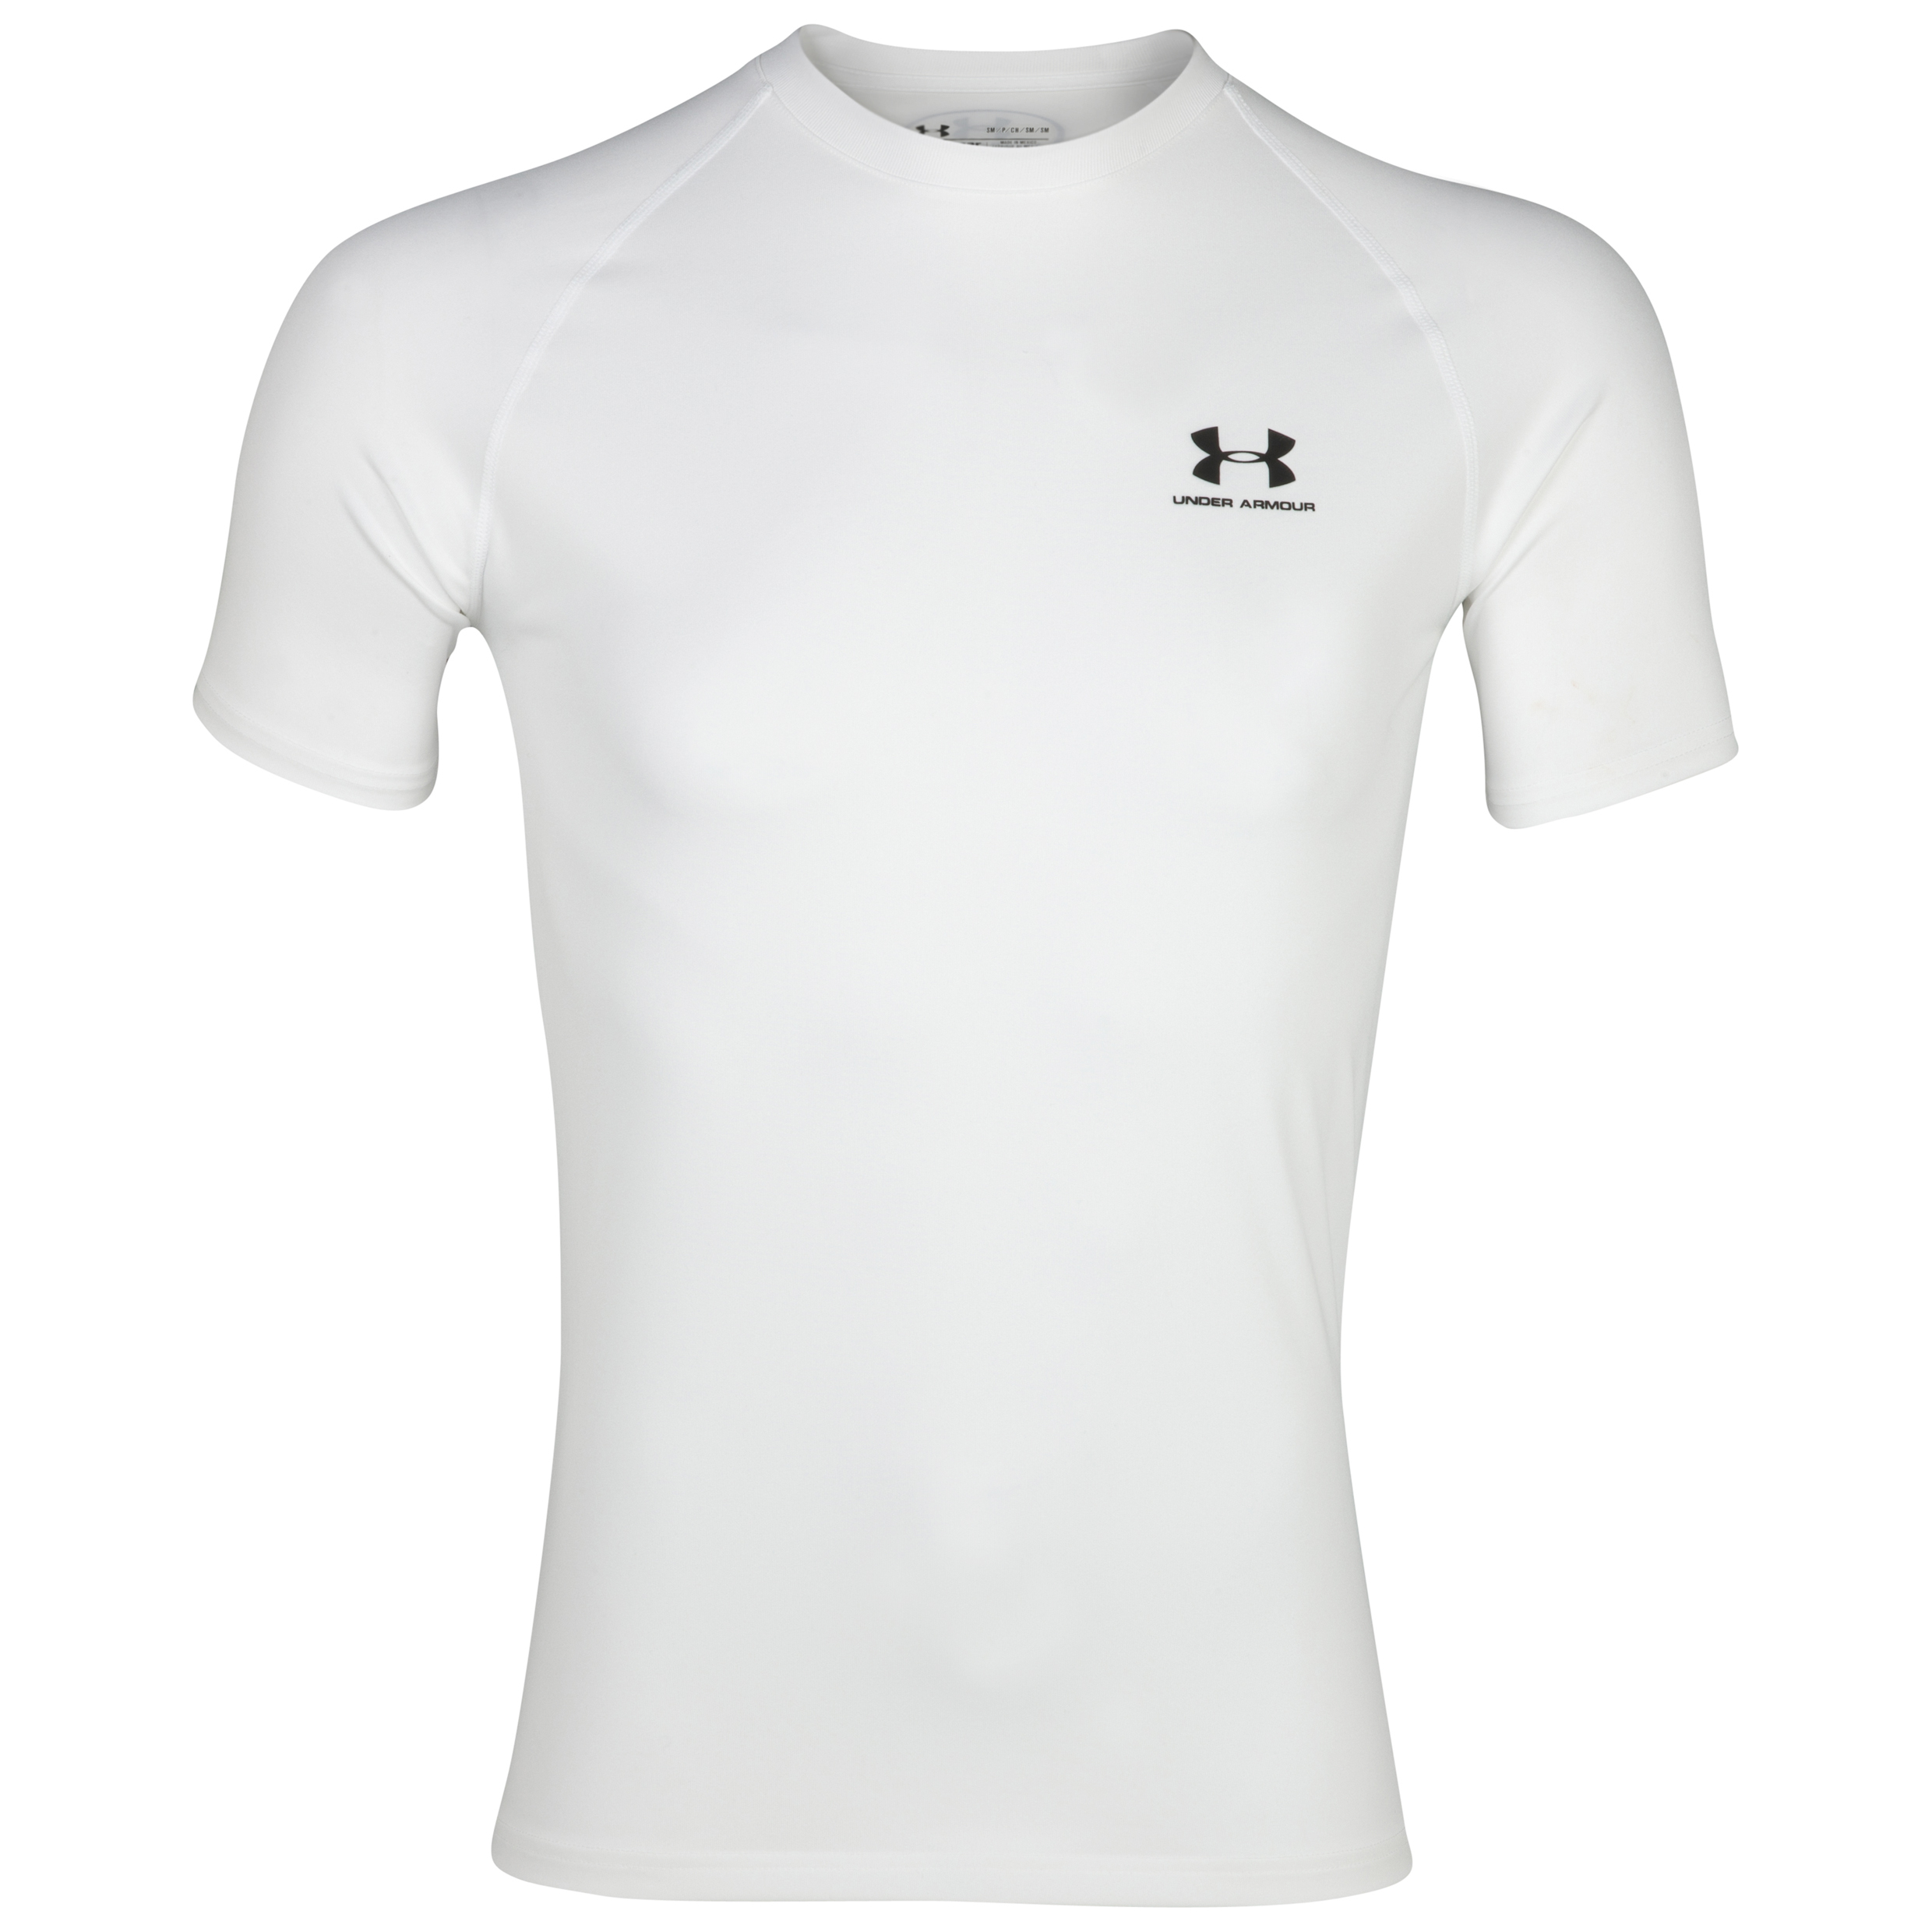 Under Armour Heatgear Vented Baselayer Top - White/Steel